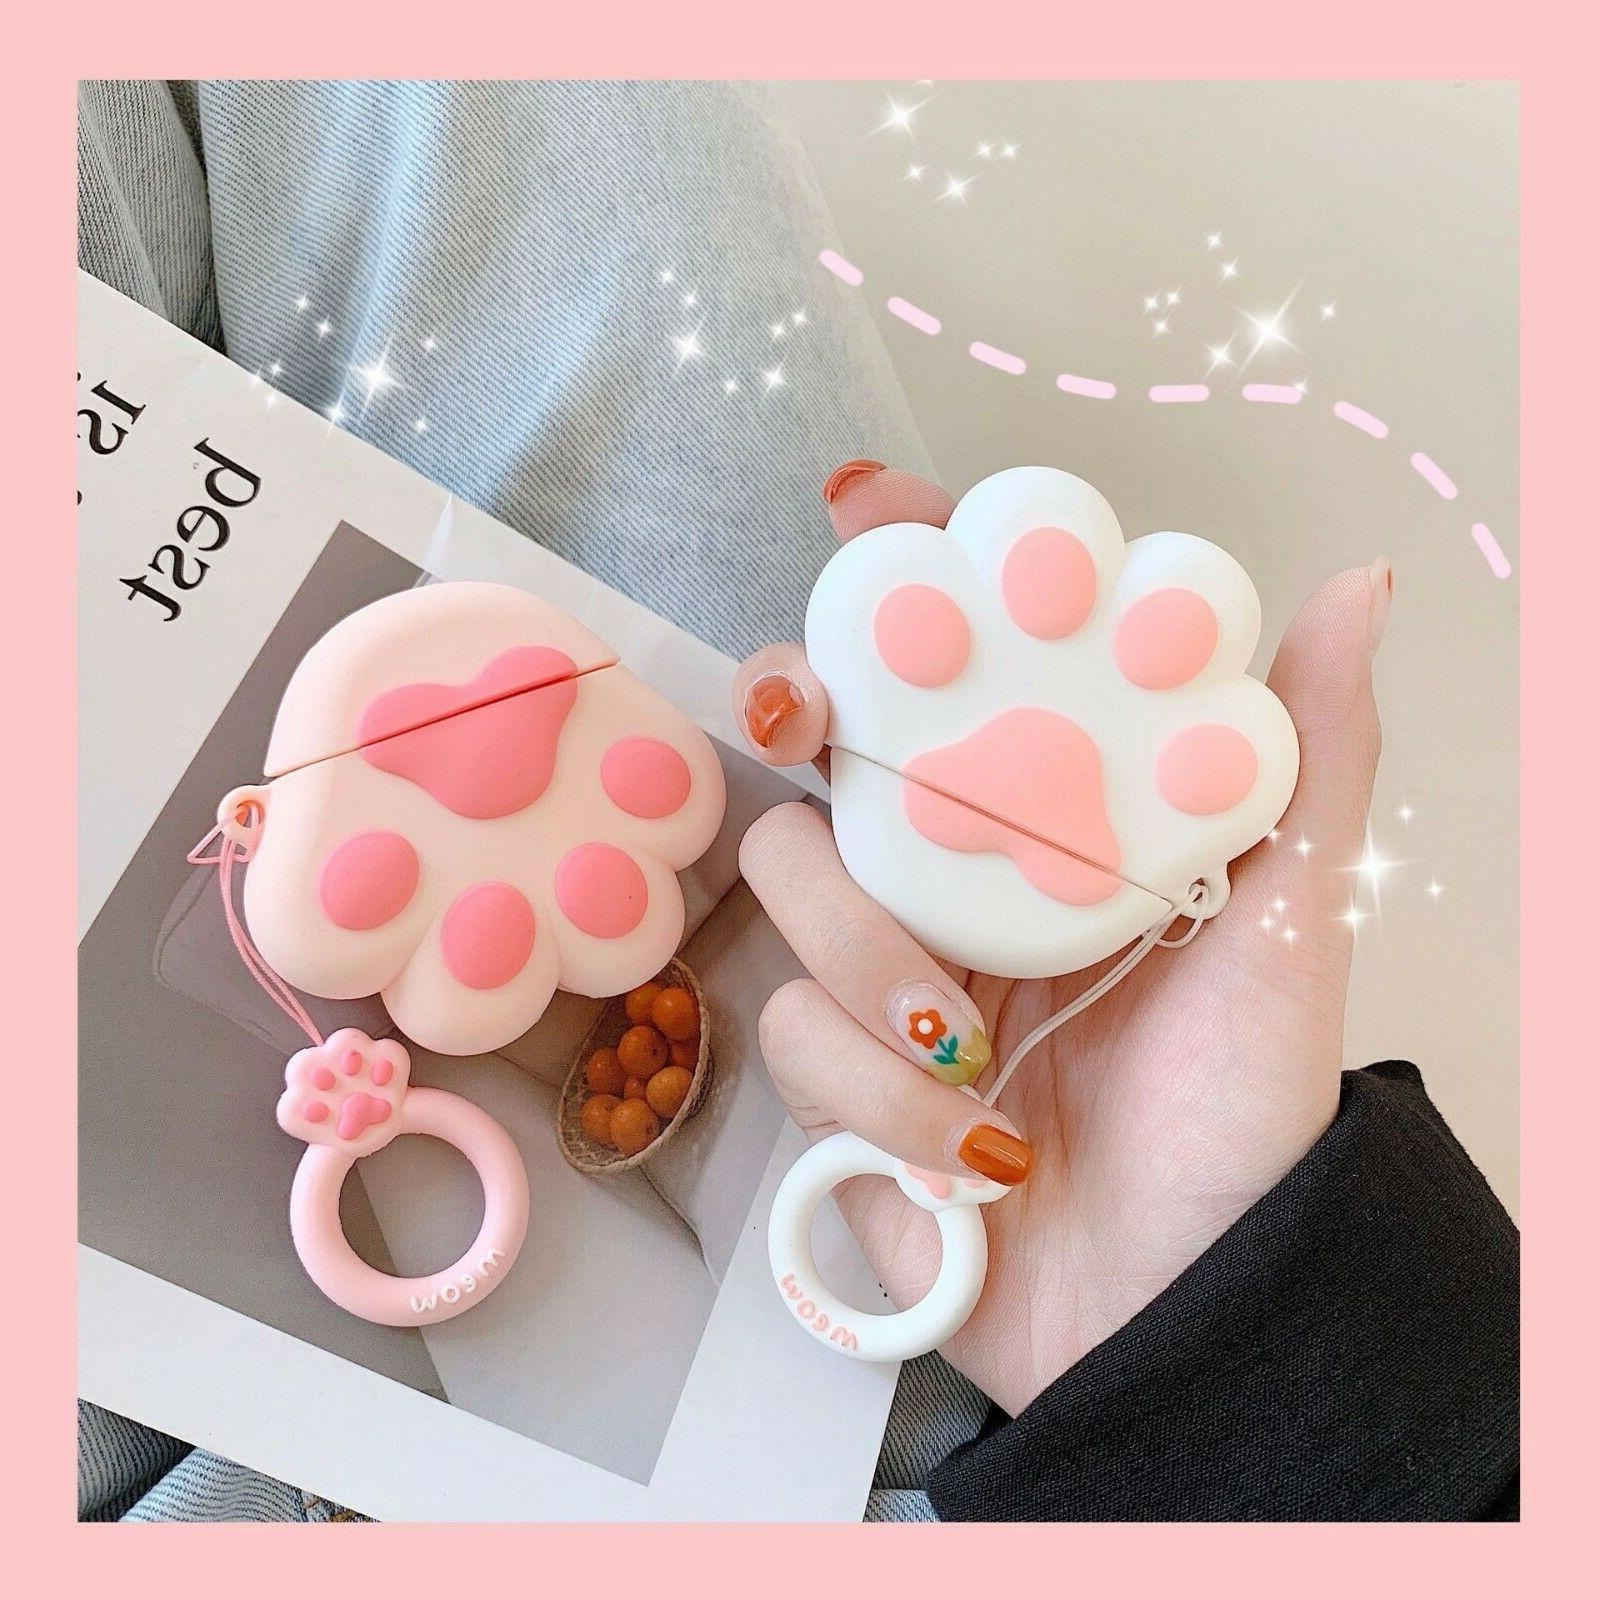 Cute 3D AirPods Silicone Case Cover Skin For Charging Case